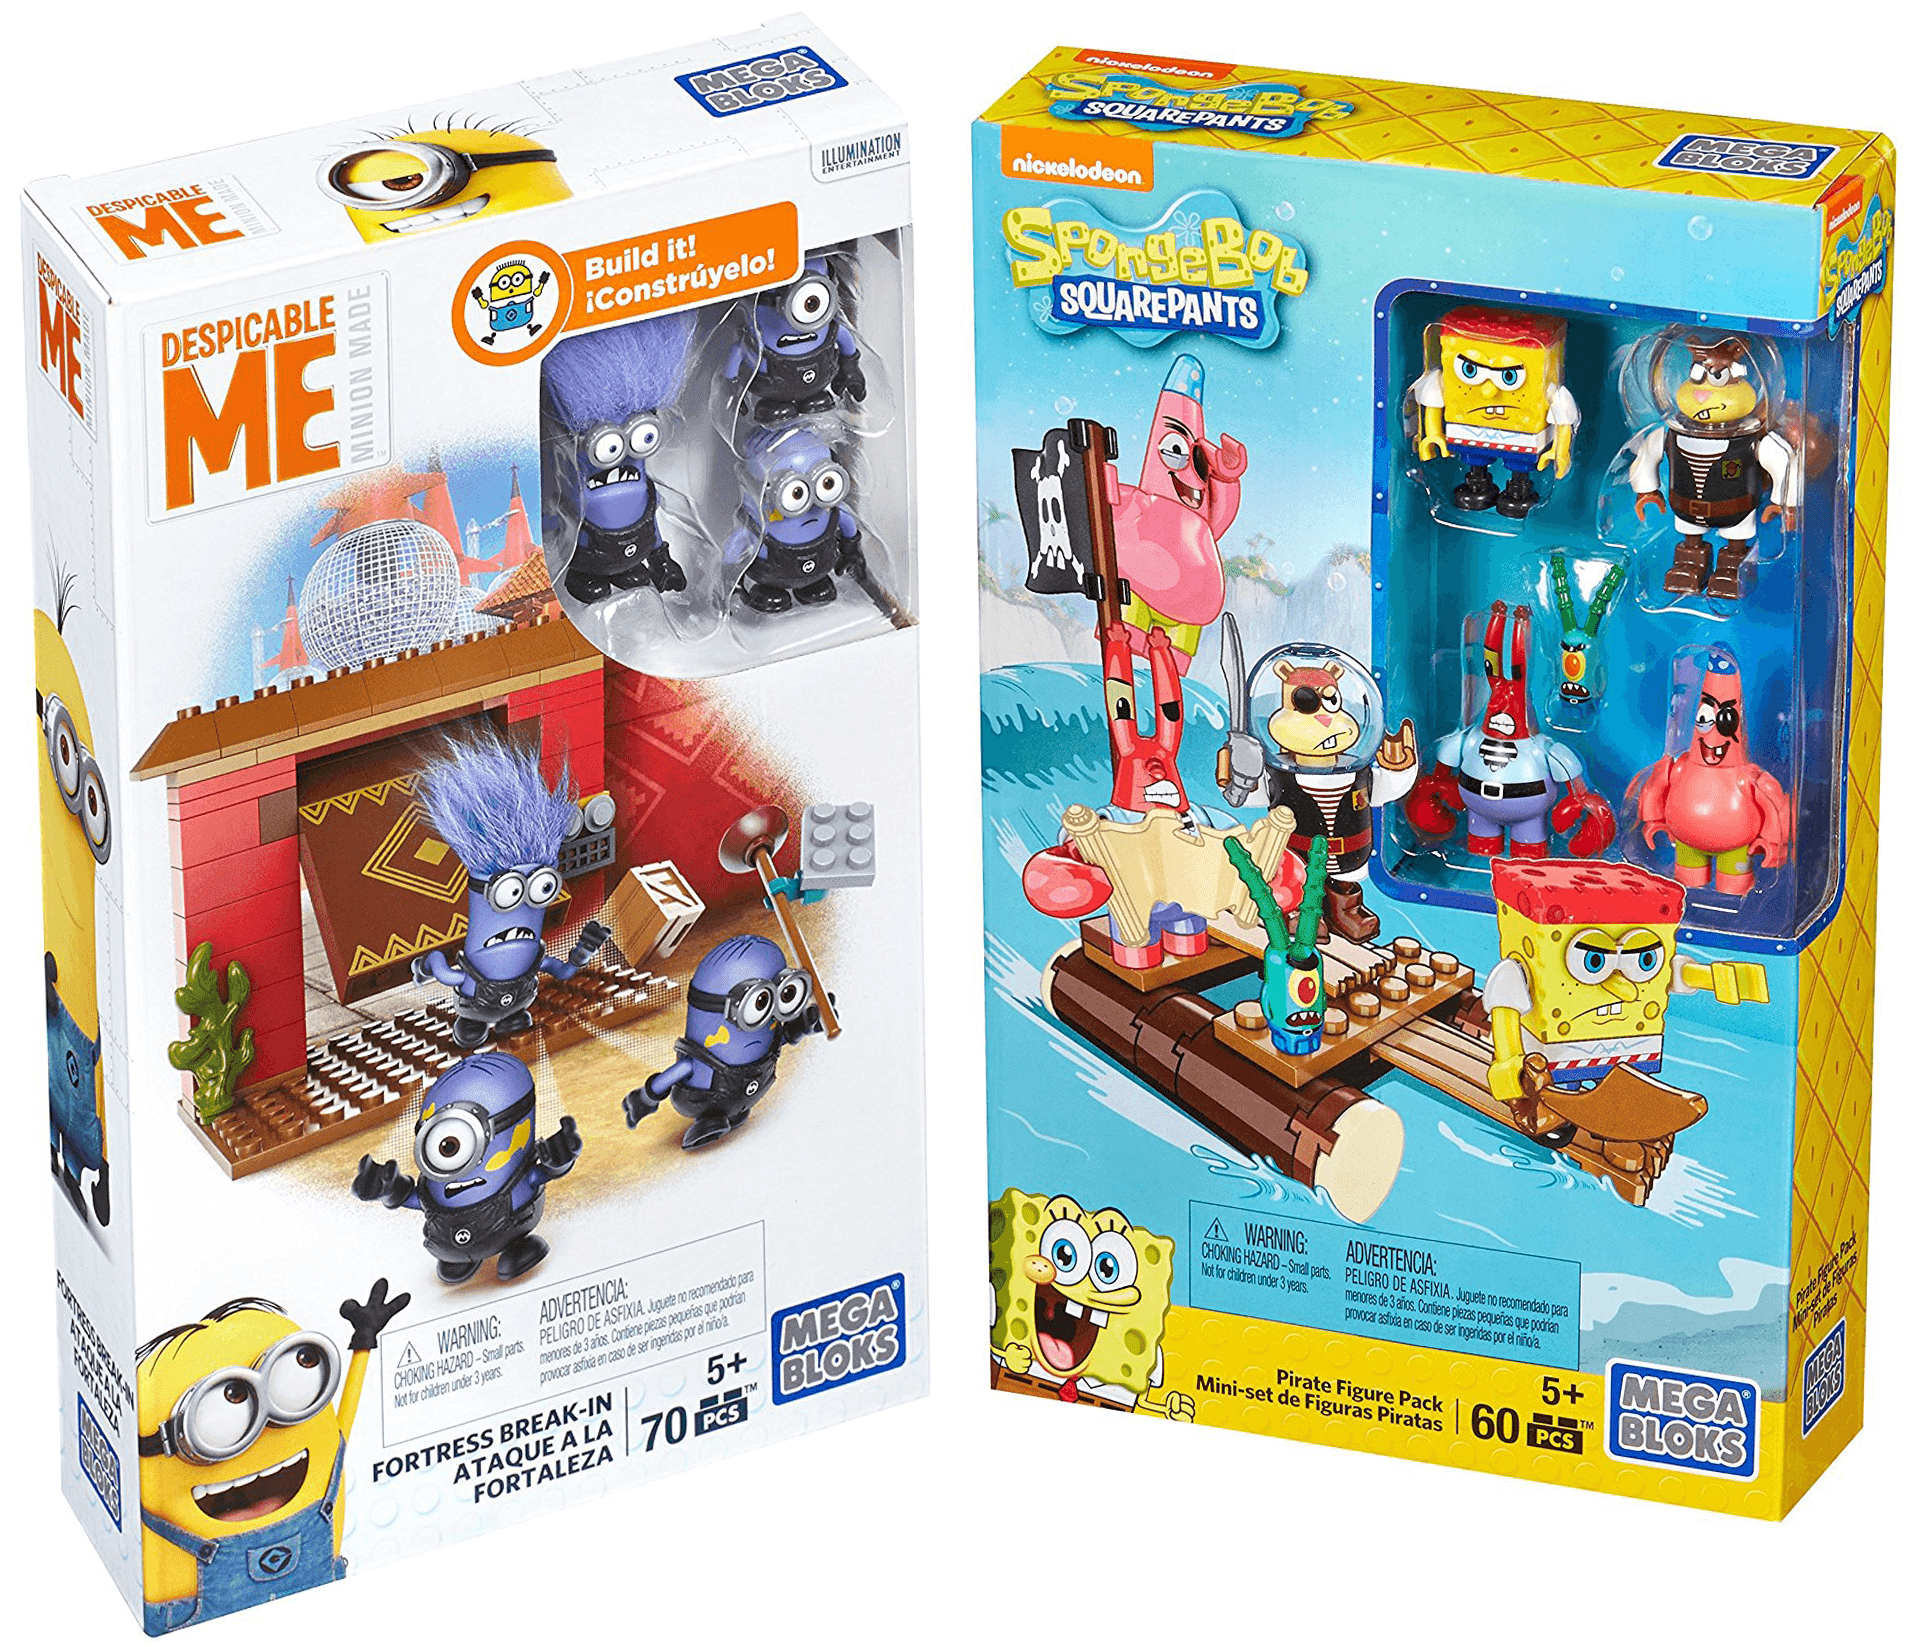 Mega Bloks Figure Despicable Me Minions Fortress Break-In + Spongebob Squarepants Pirate... by